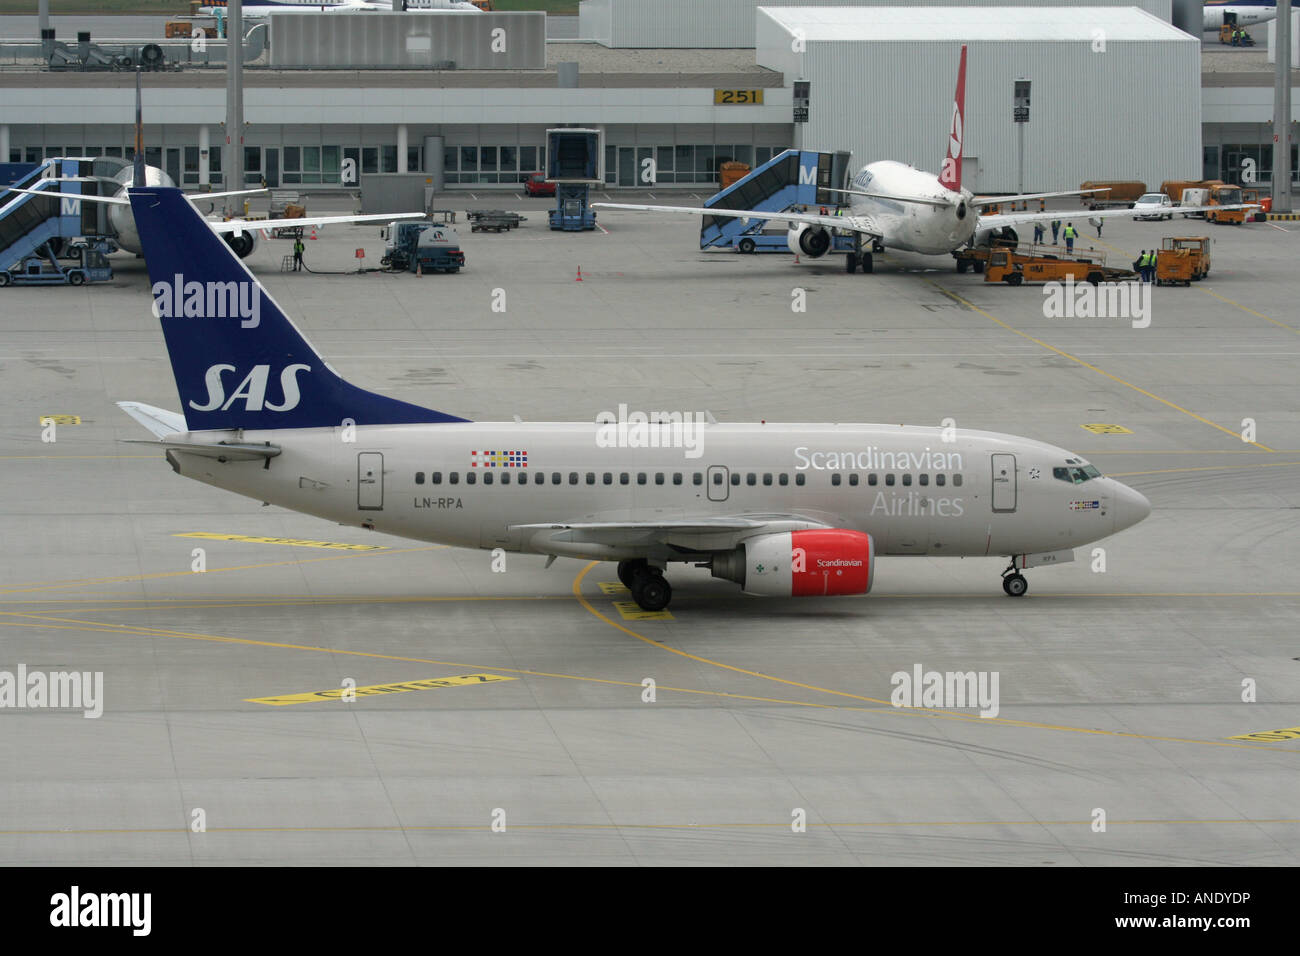 sas scandinavian airlines boeing 737 600 taxiing at munich airport